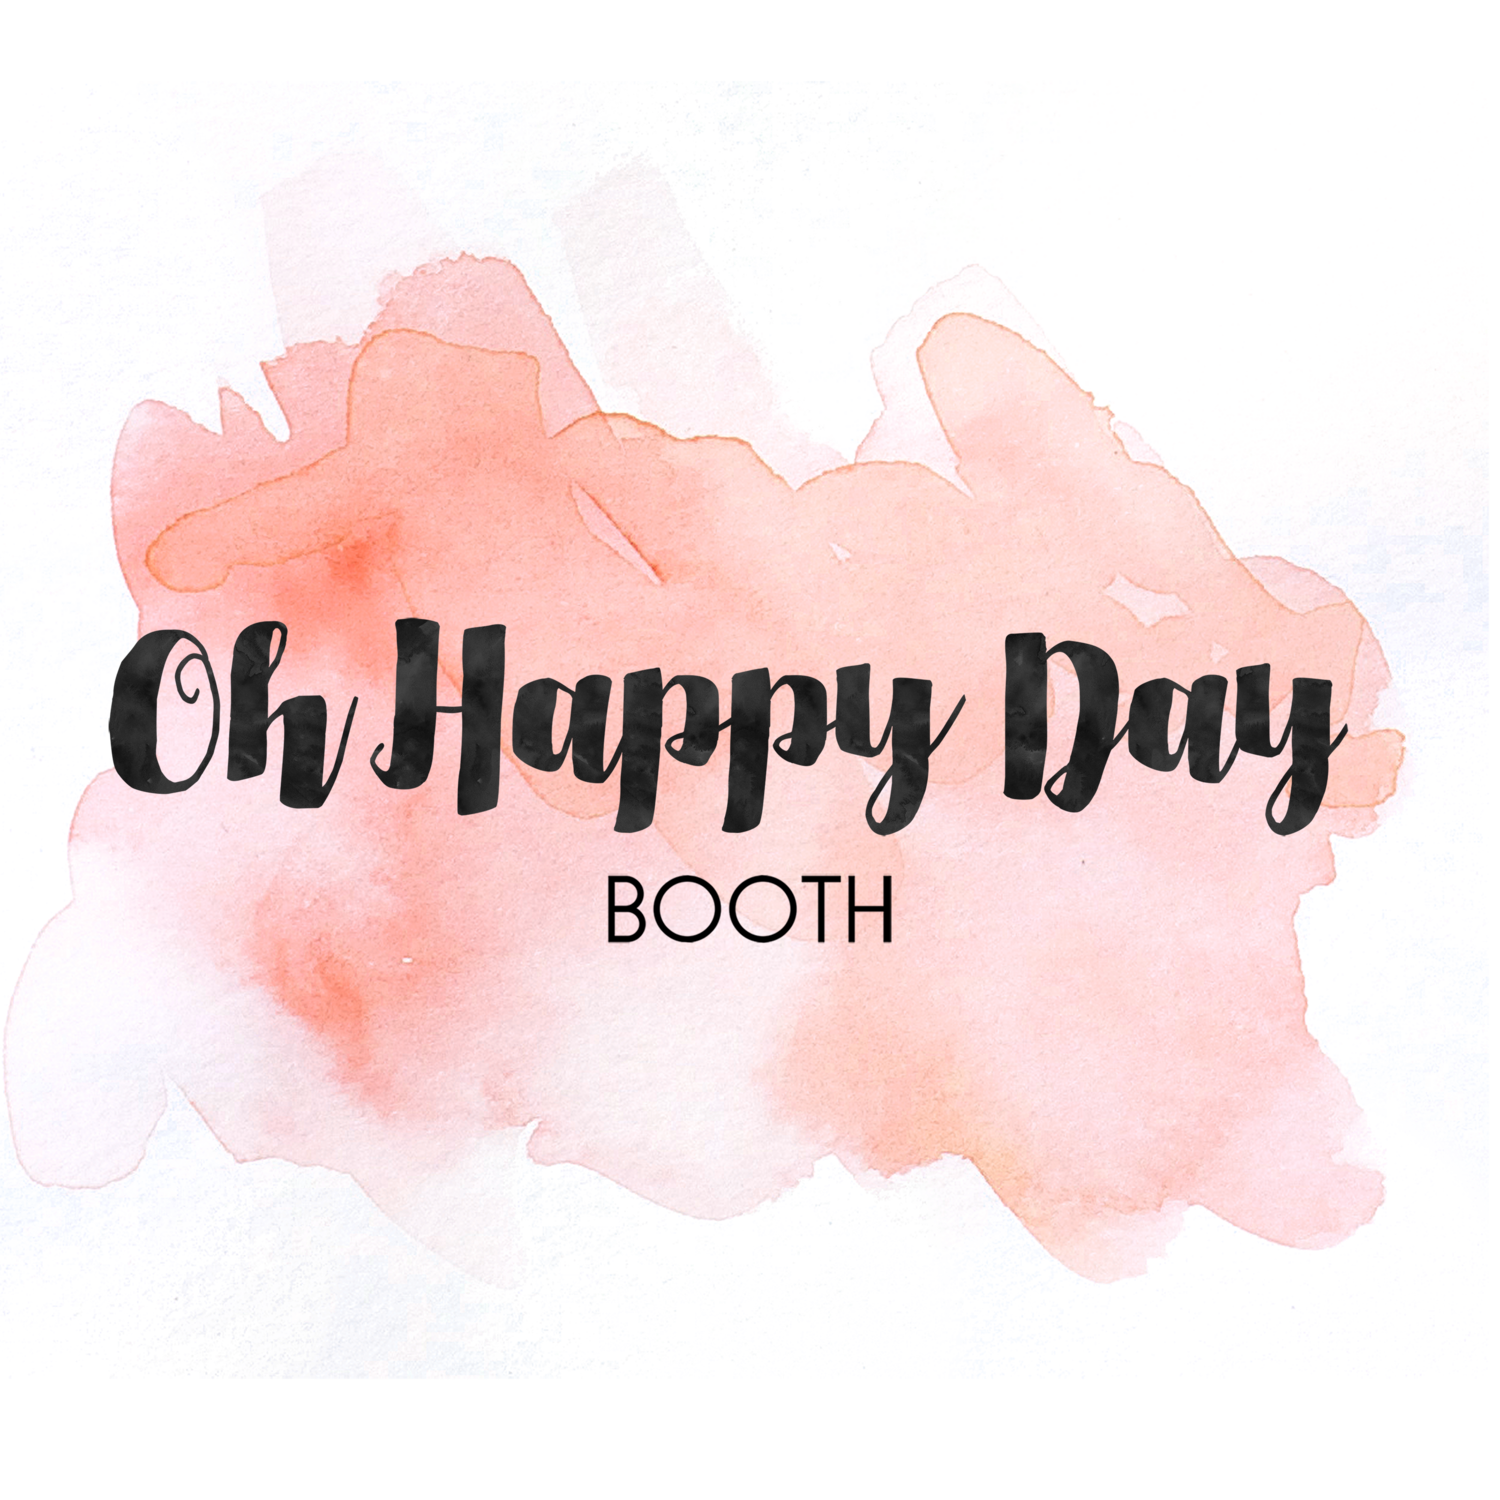 Oh Happy Day Booth